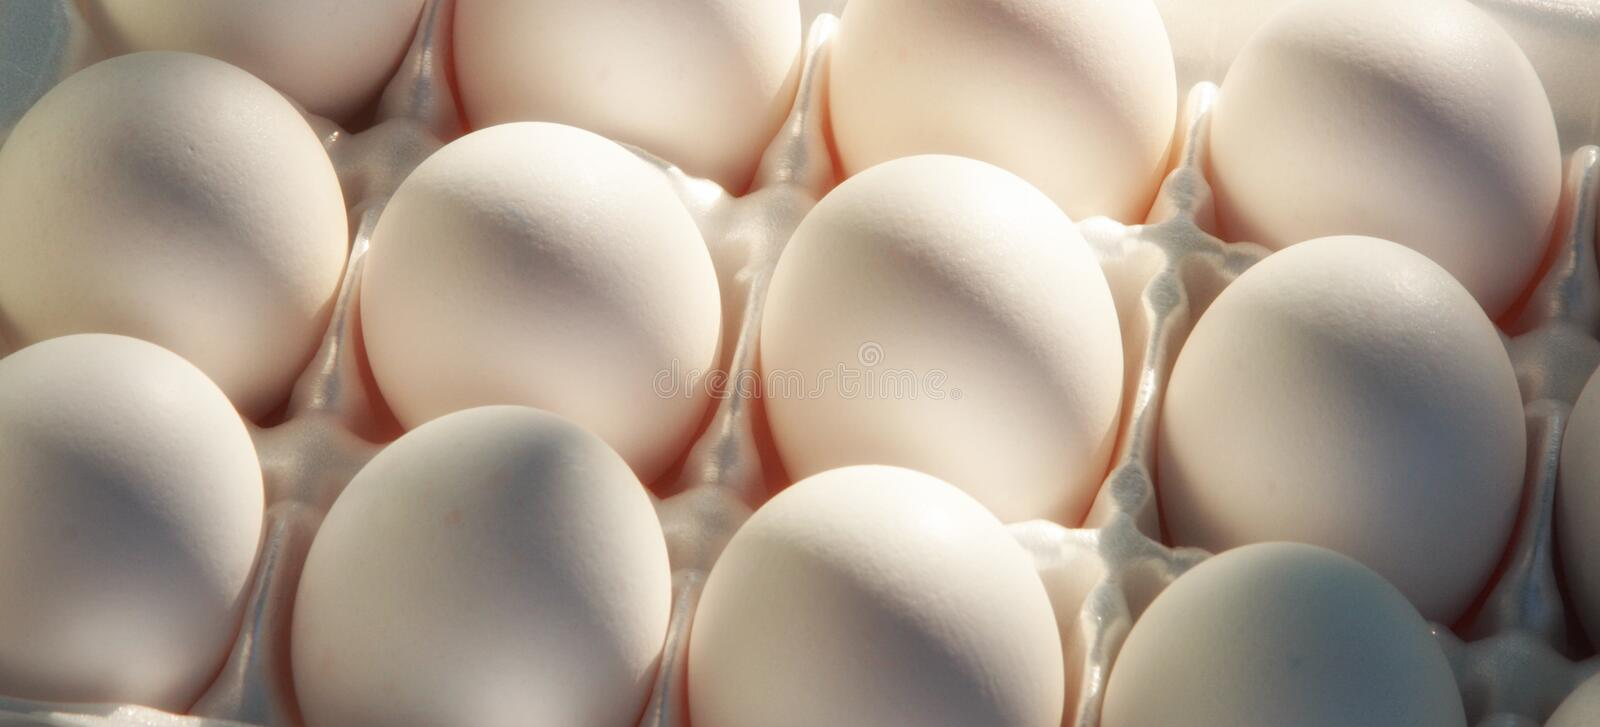 Tray of eggs. Whole eggs in a carton in sunlight royalty free stock photography